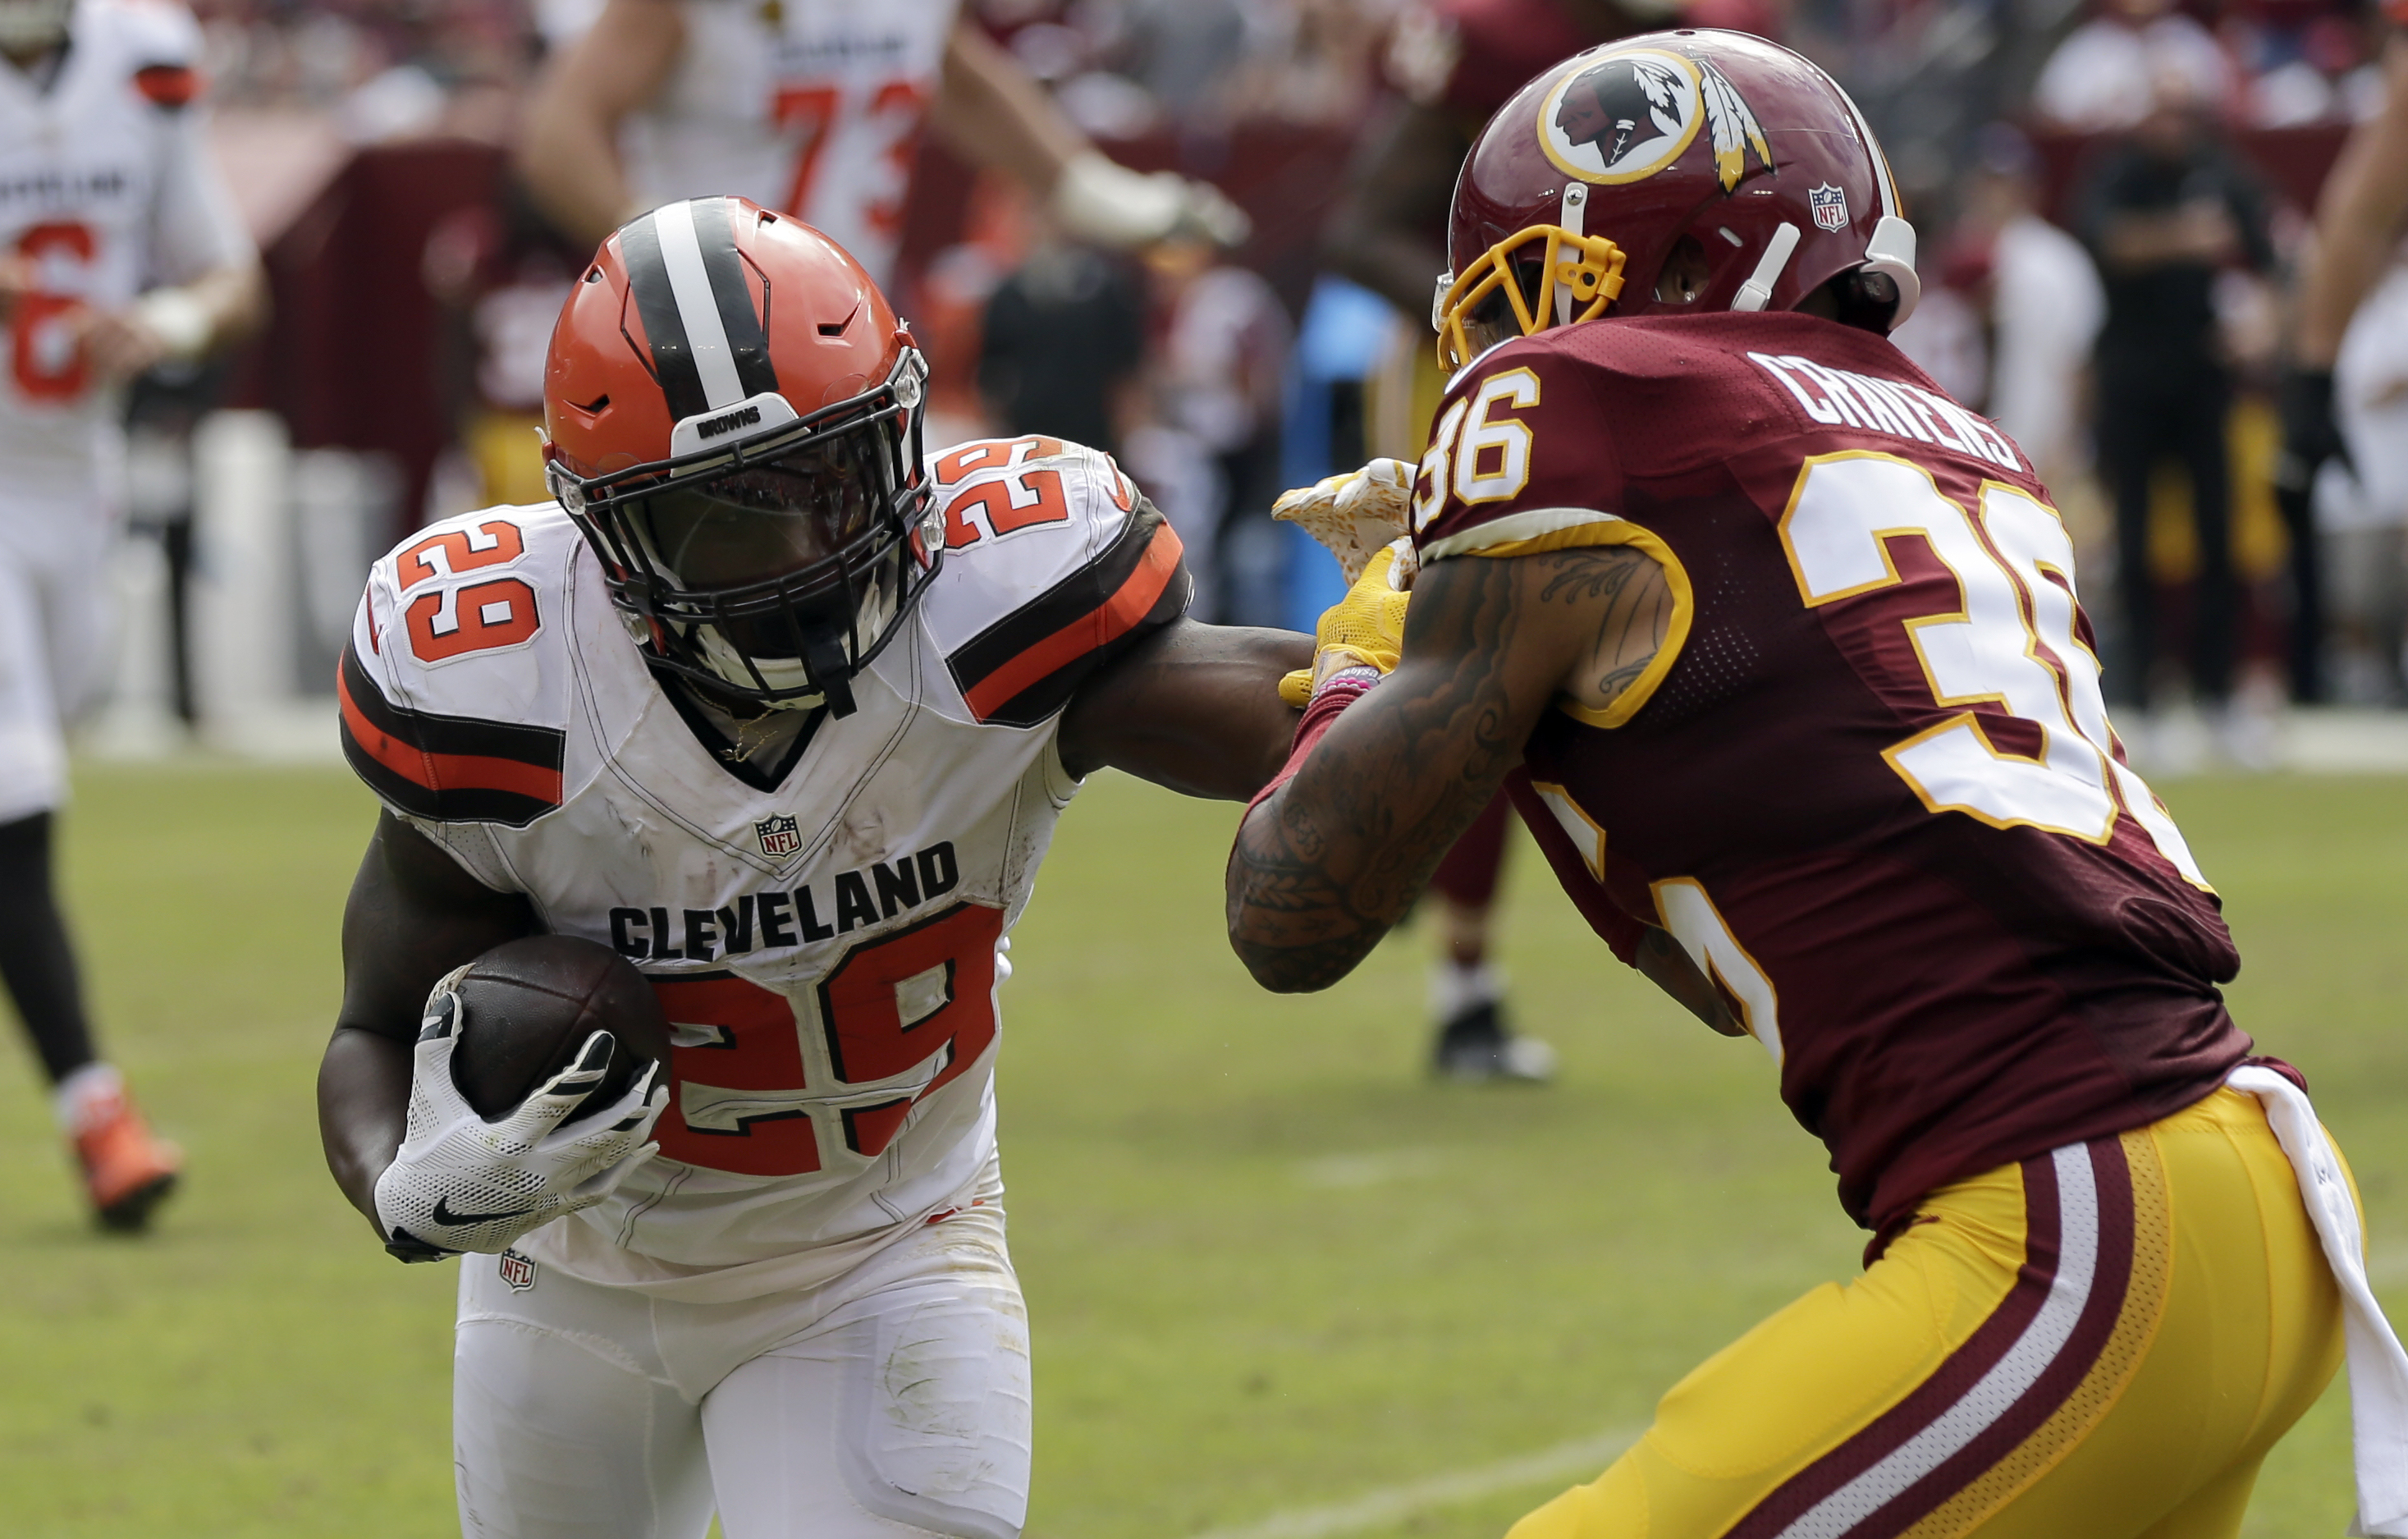 In this photo taken Oct. 2, 2016, Washington Redskins defensive back Su'a Cravens (36) attempts to tackle Cleveland Browns running back Duke Johnson (29) during the first half of an NFL football game in Landover, Md. Cravens figured out a few practices in